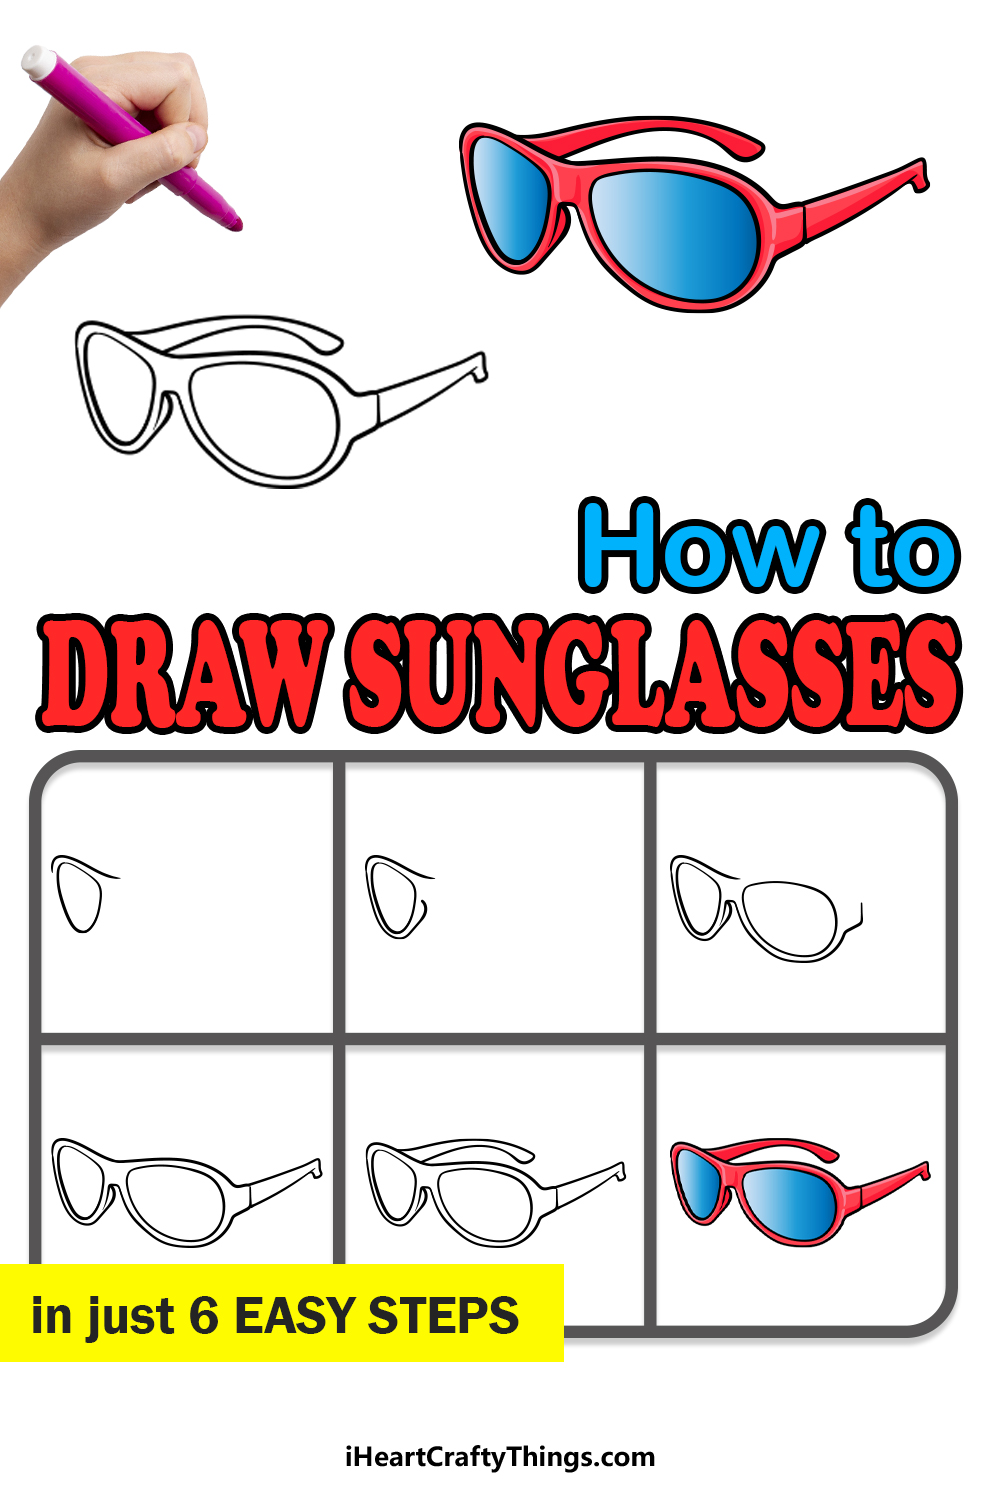 how to draw sunglasses in 6 easy steps